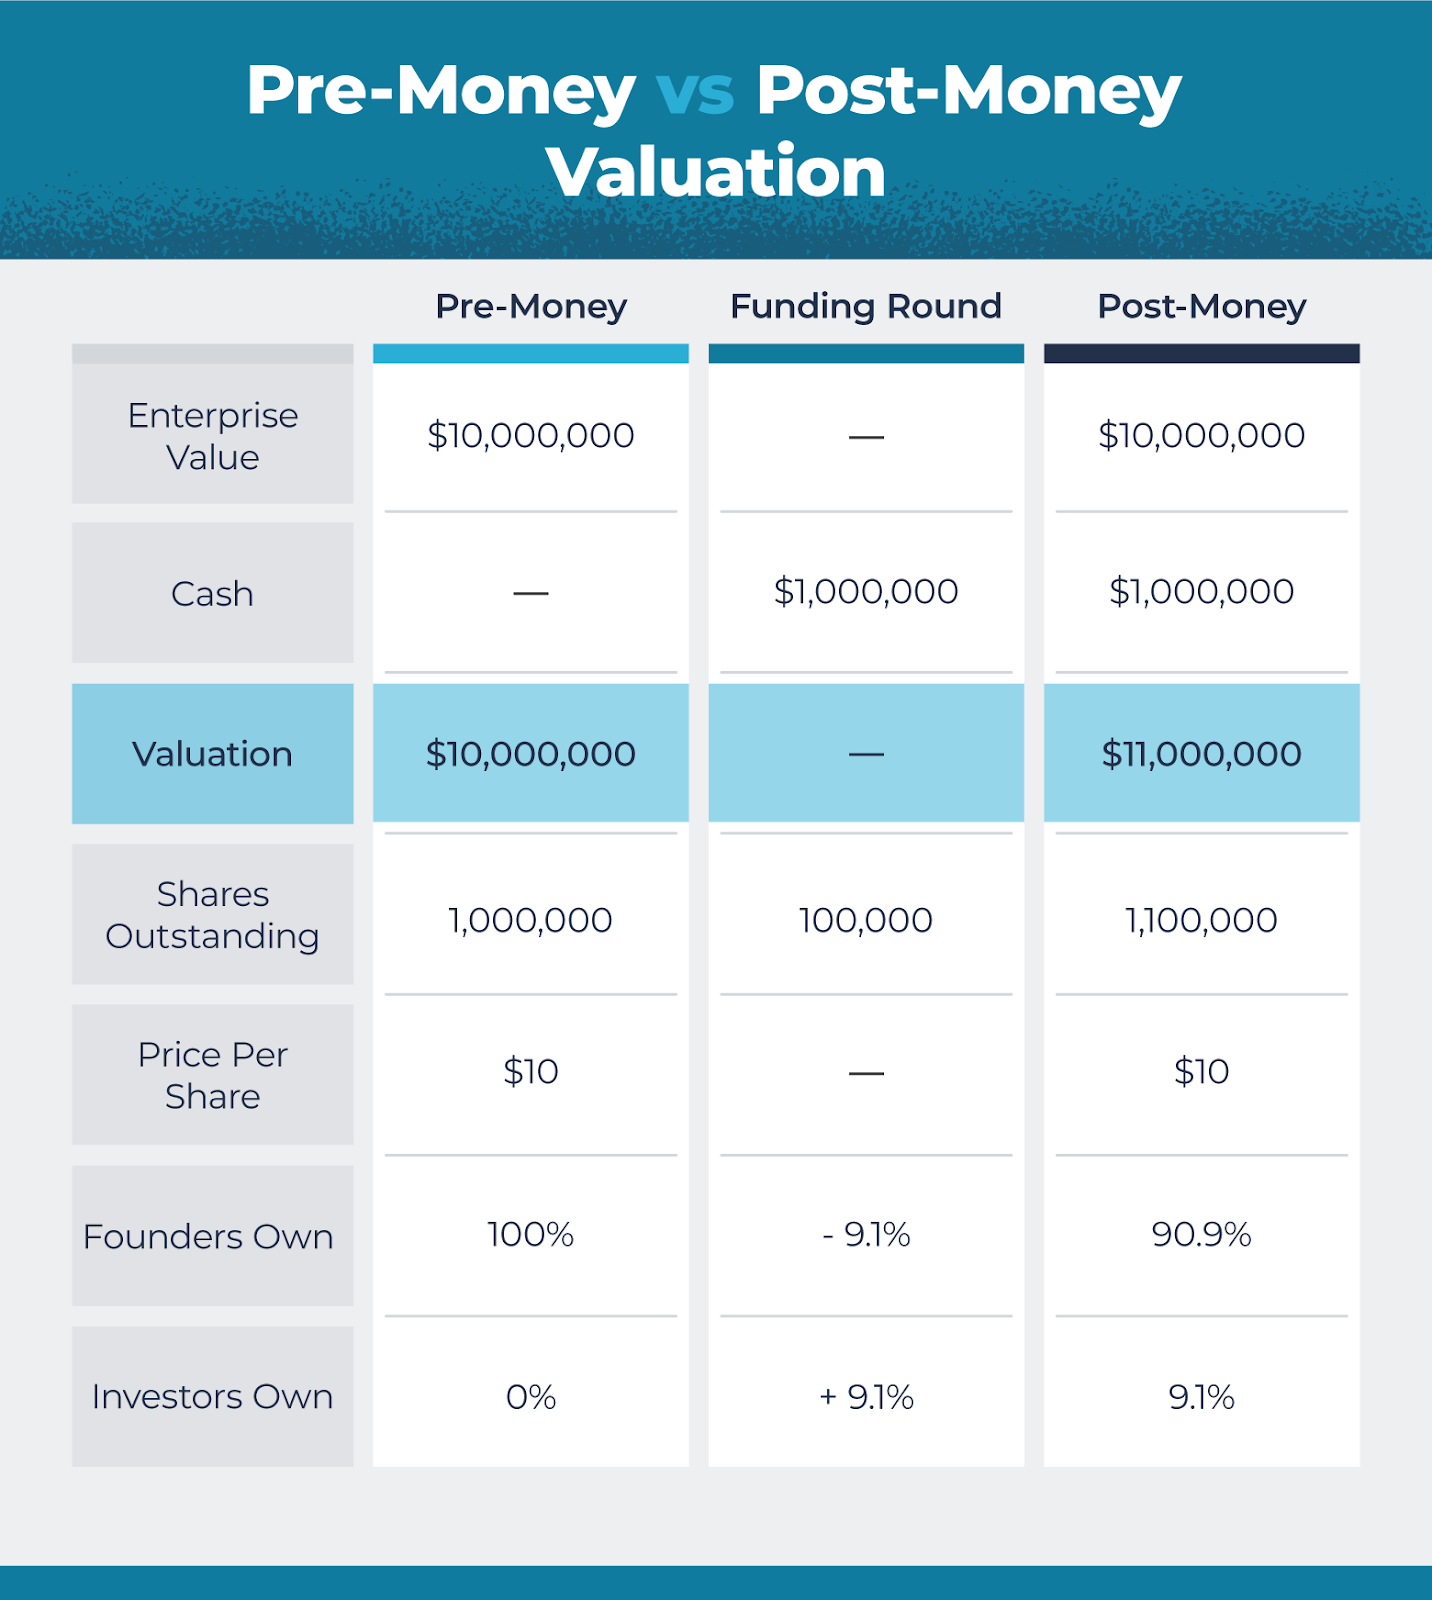 example table for visualizing pre-money and post-money valuations